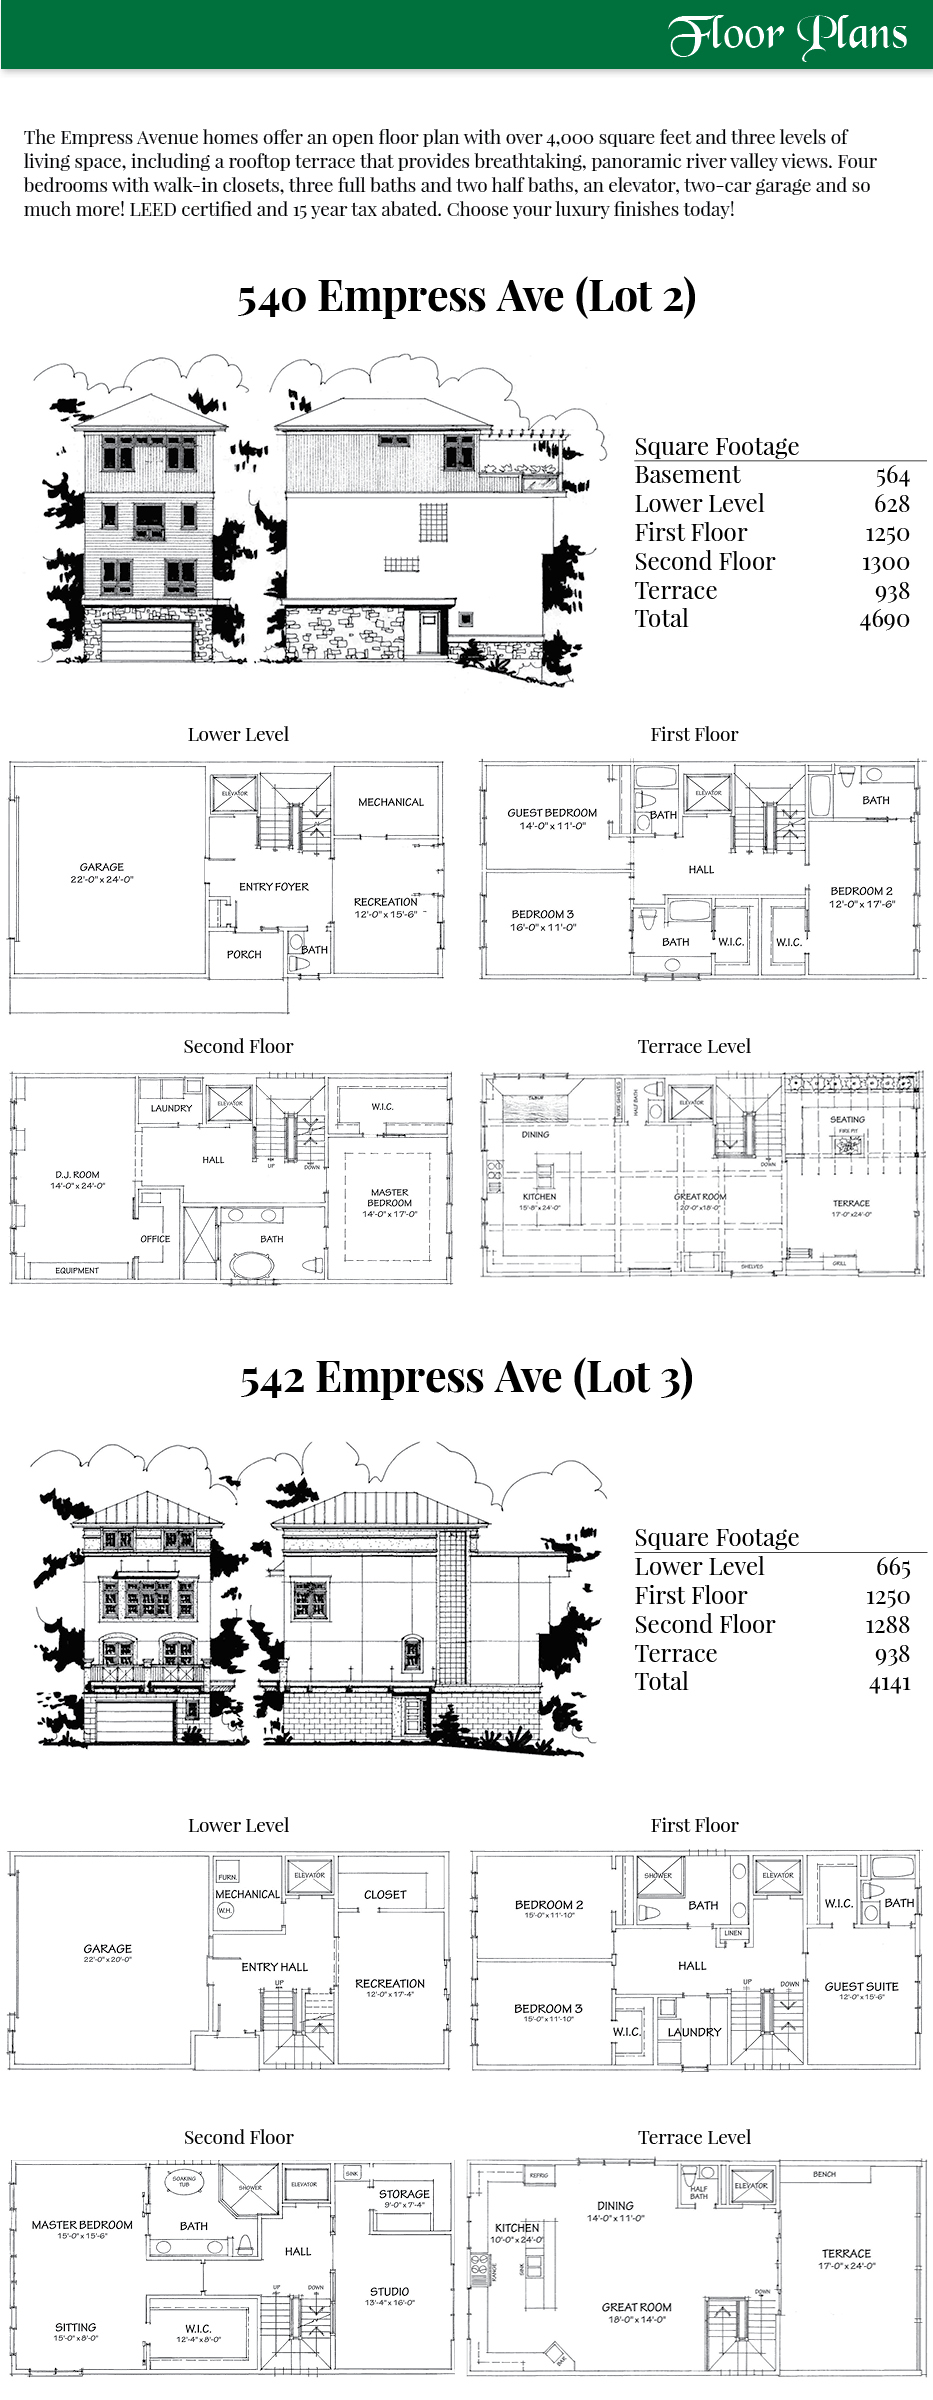 McGarey Custom Homes floorplans renderings